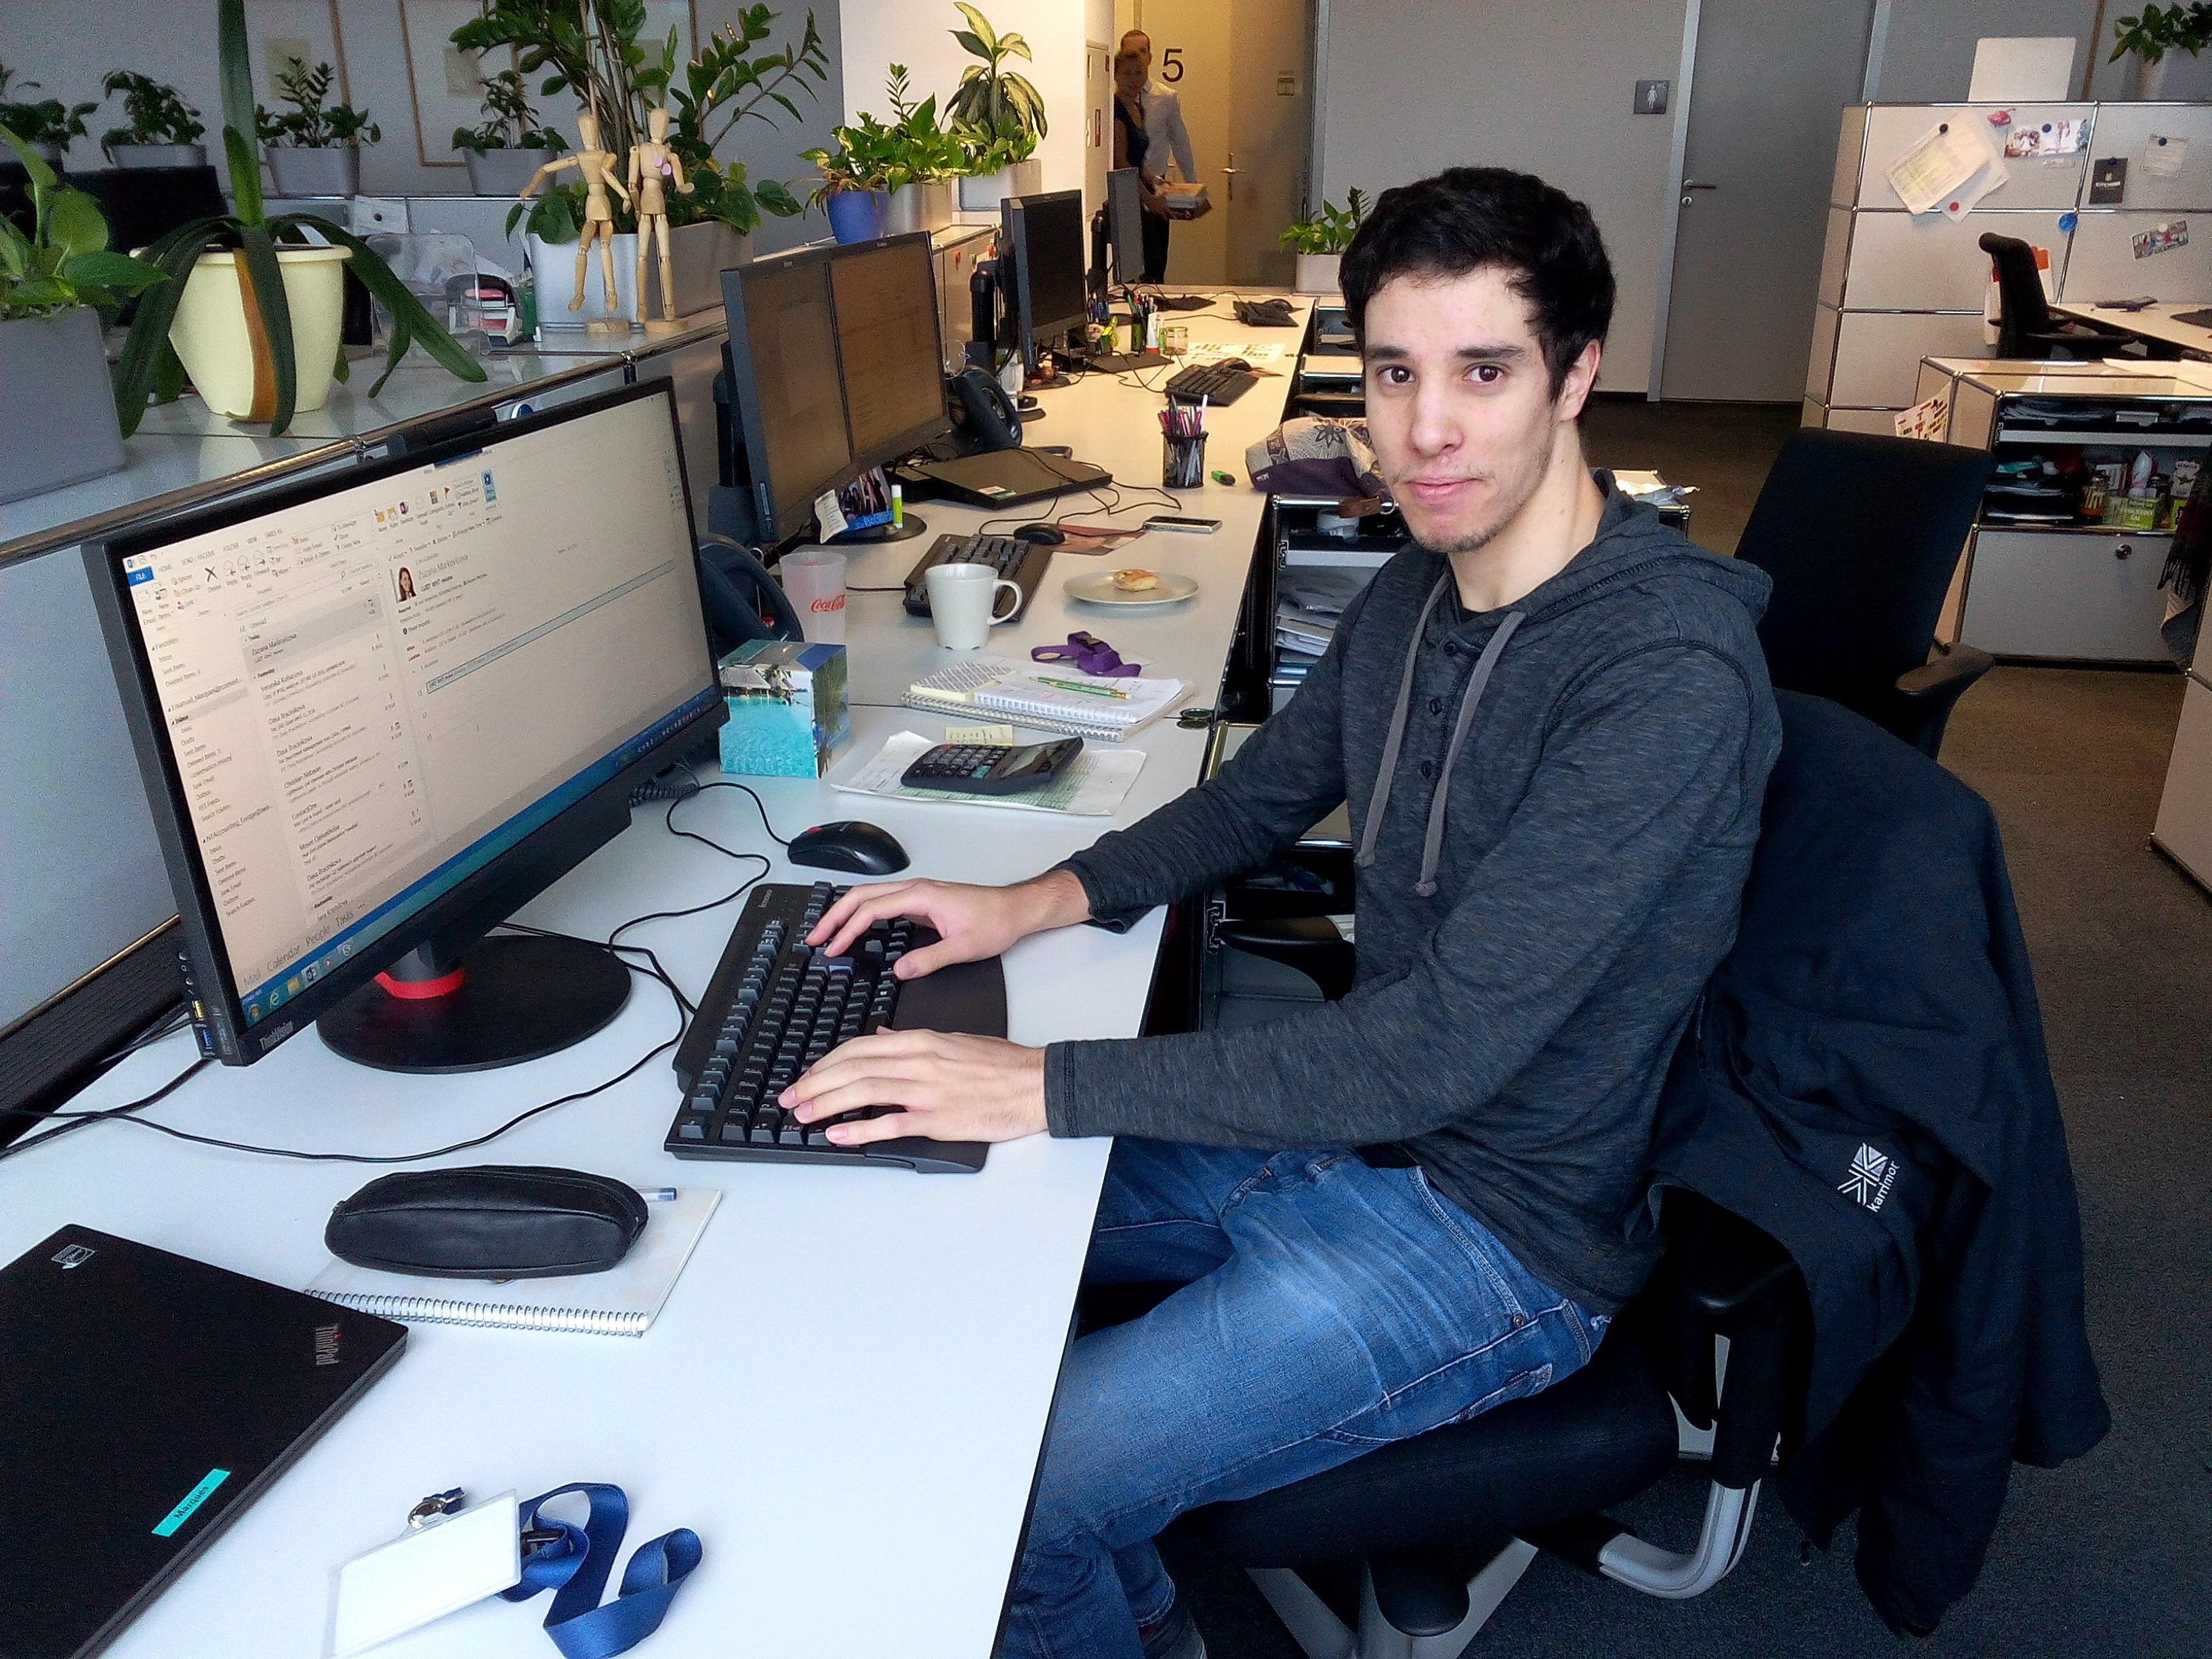 Emanuel, Accountant Trainee, Portugal